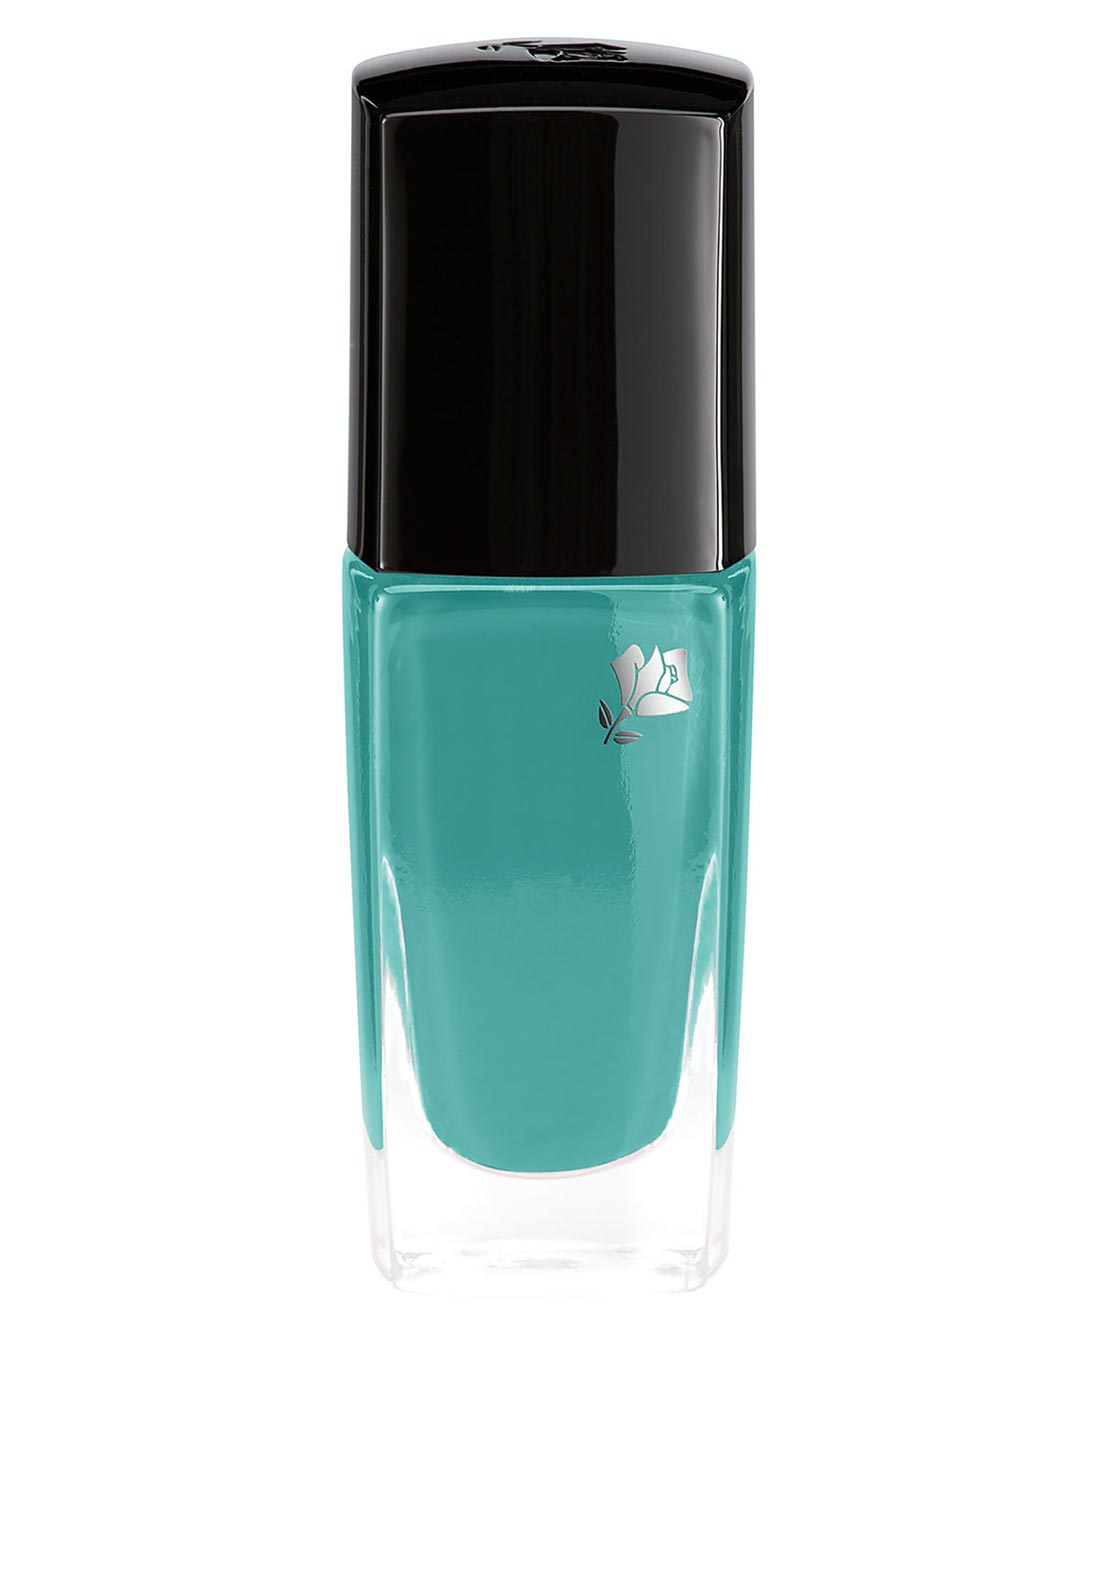 Lancôme Vernis In Love Nail Polish, Vert Tuileries 383M